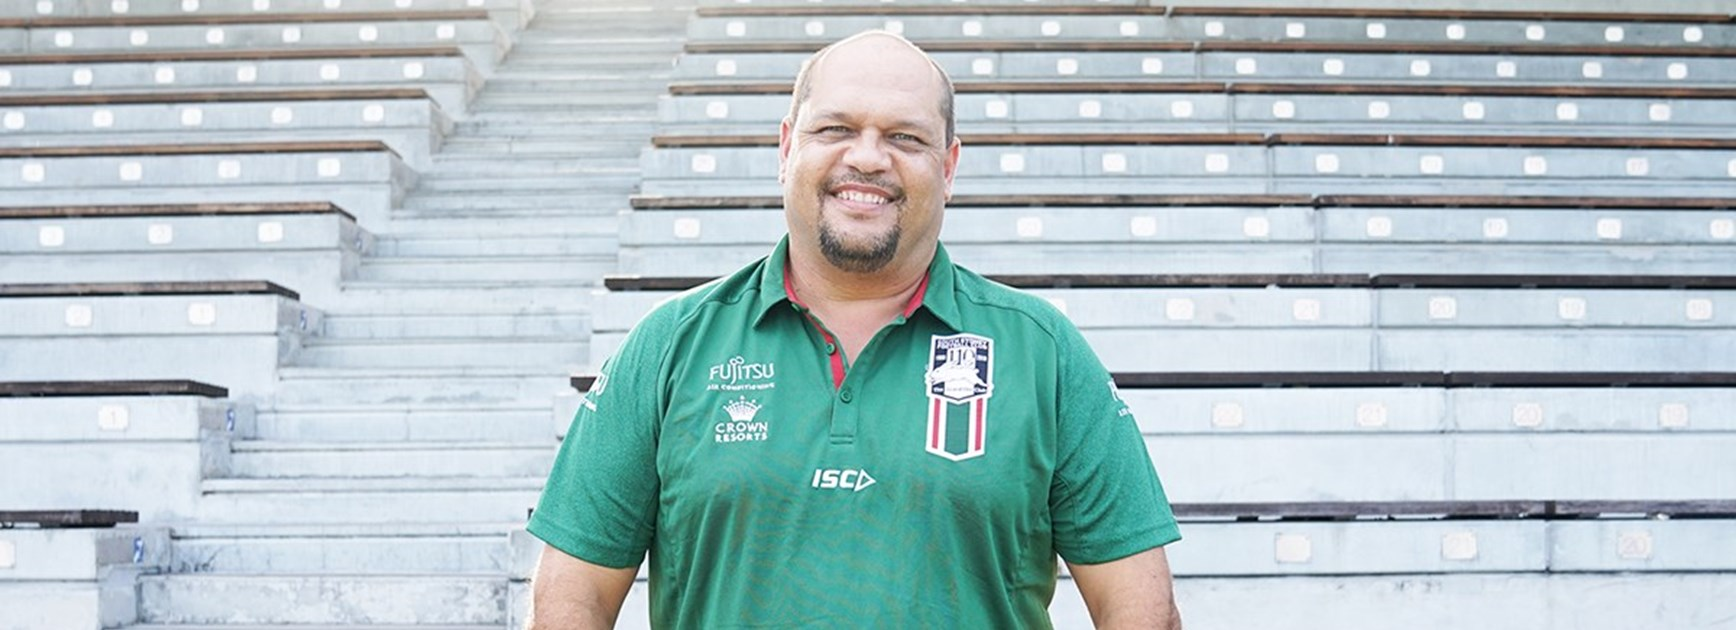 Coach Allende thrilled with historic win